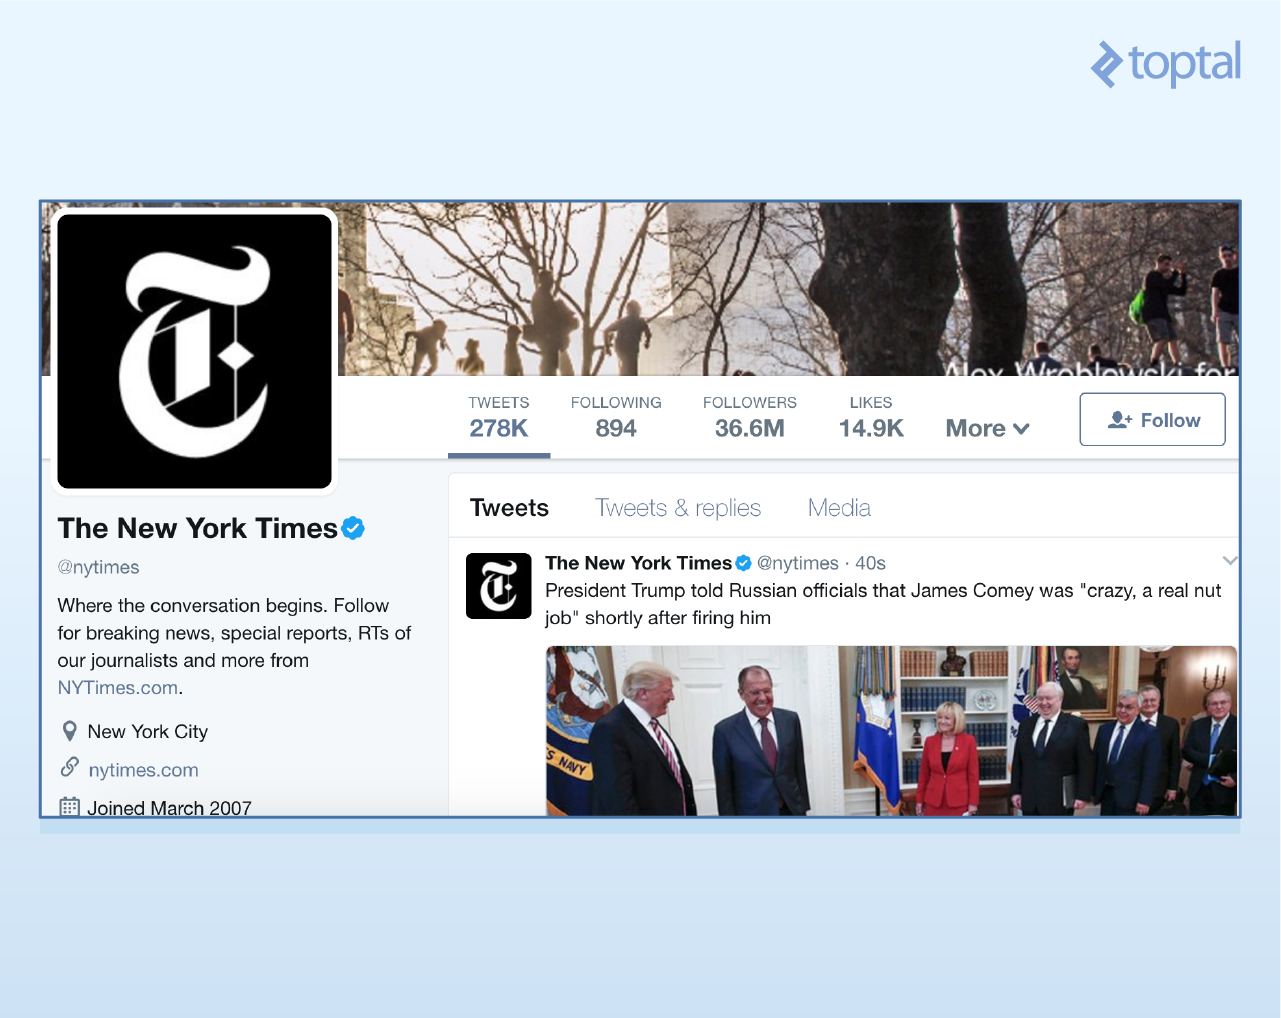 The contents of the @NyTimes Twitter account at the moment of writing